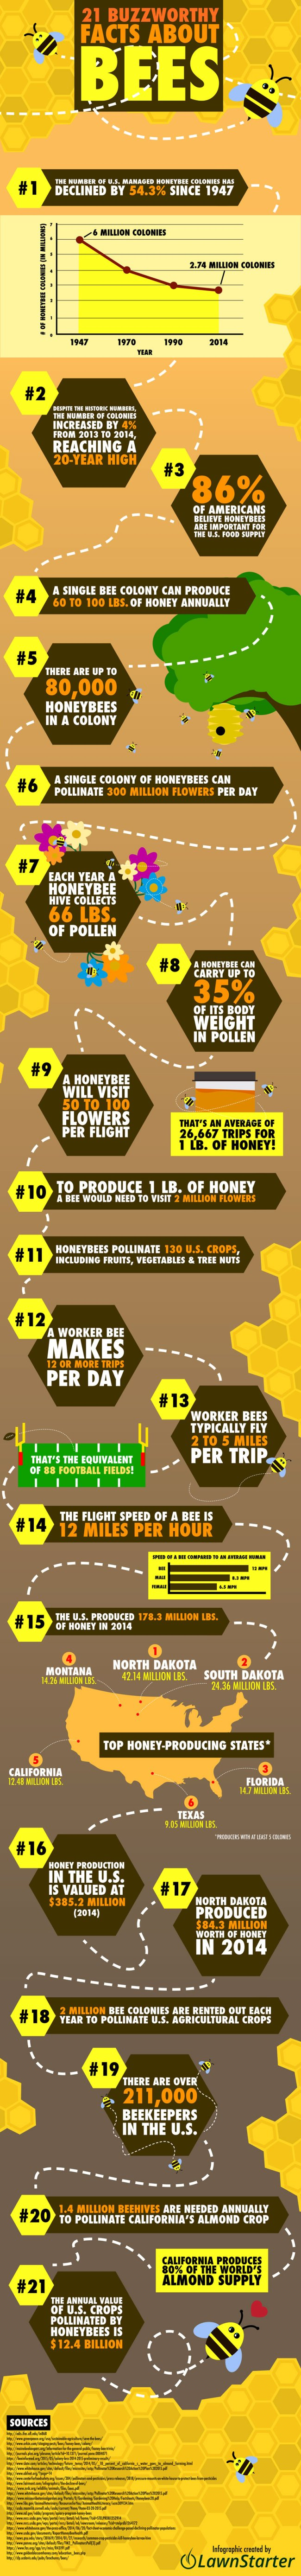 21 Buzzworthy Facts About Bees